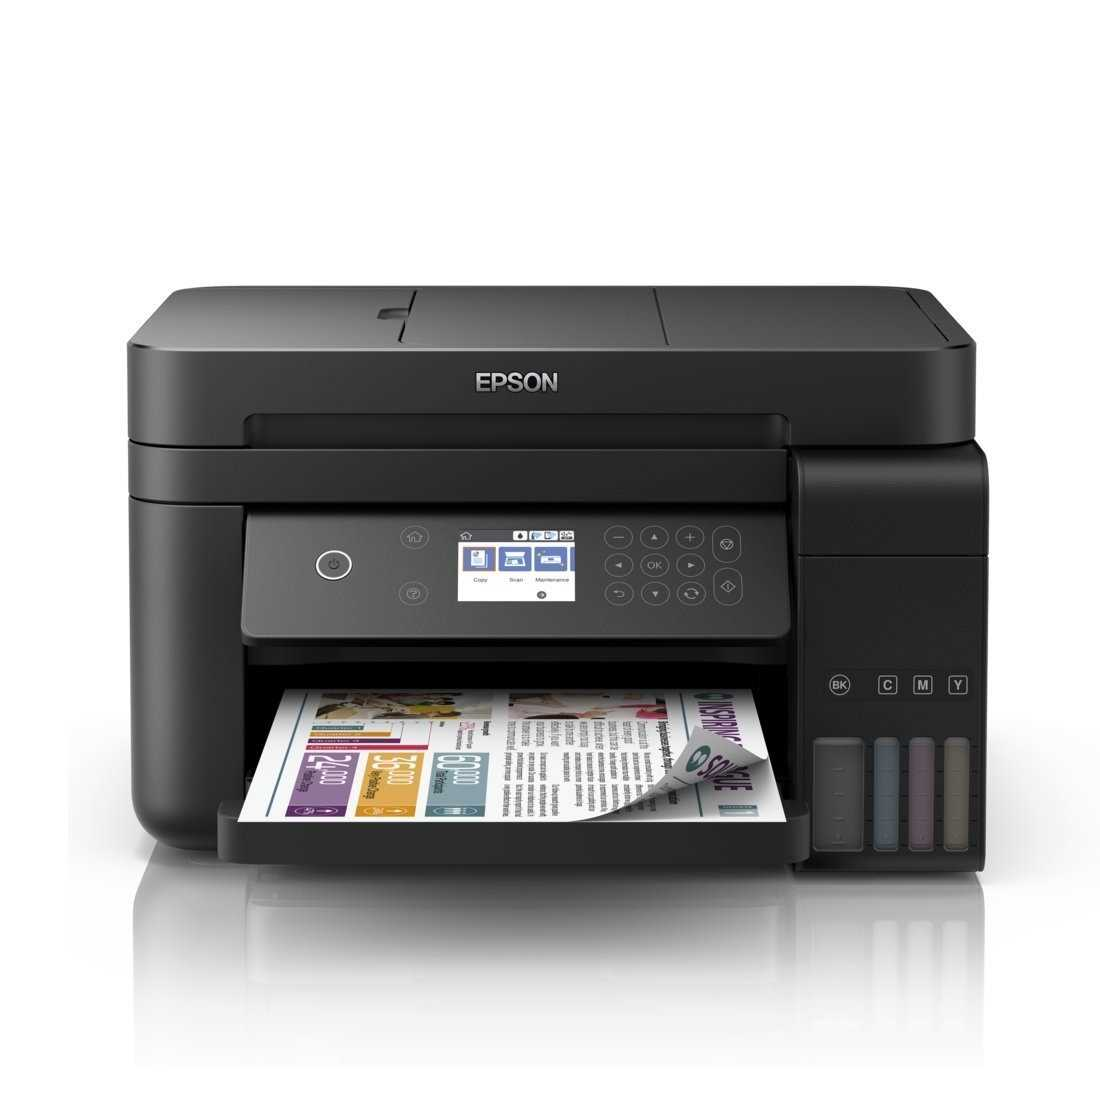 canon printer service center in perambur, canon printer service centers in perambur